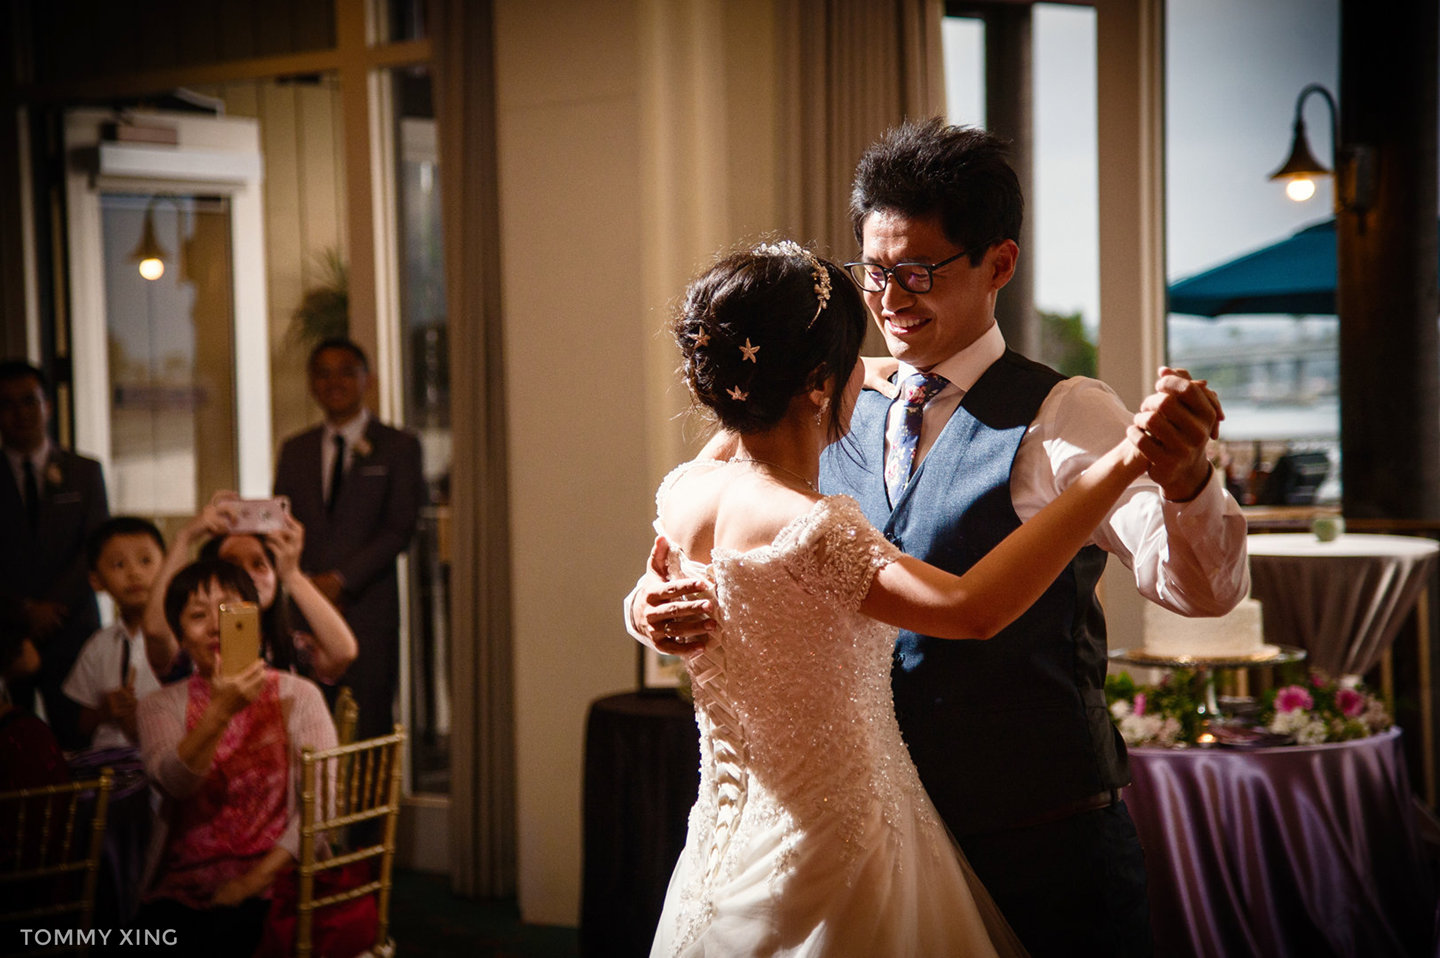 Paradise Point Resort Wedding Xiaolu & Bin San Diego 圣地亚哥婚礼摄影跟拍 Tommy Xing Photography 洛杉矶婚礼婚纱照摄影师 232.jpg